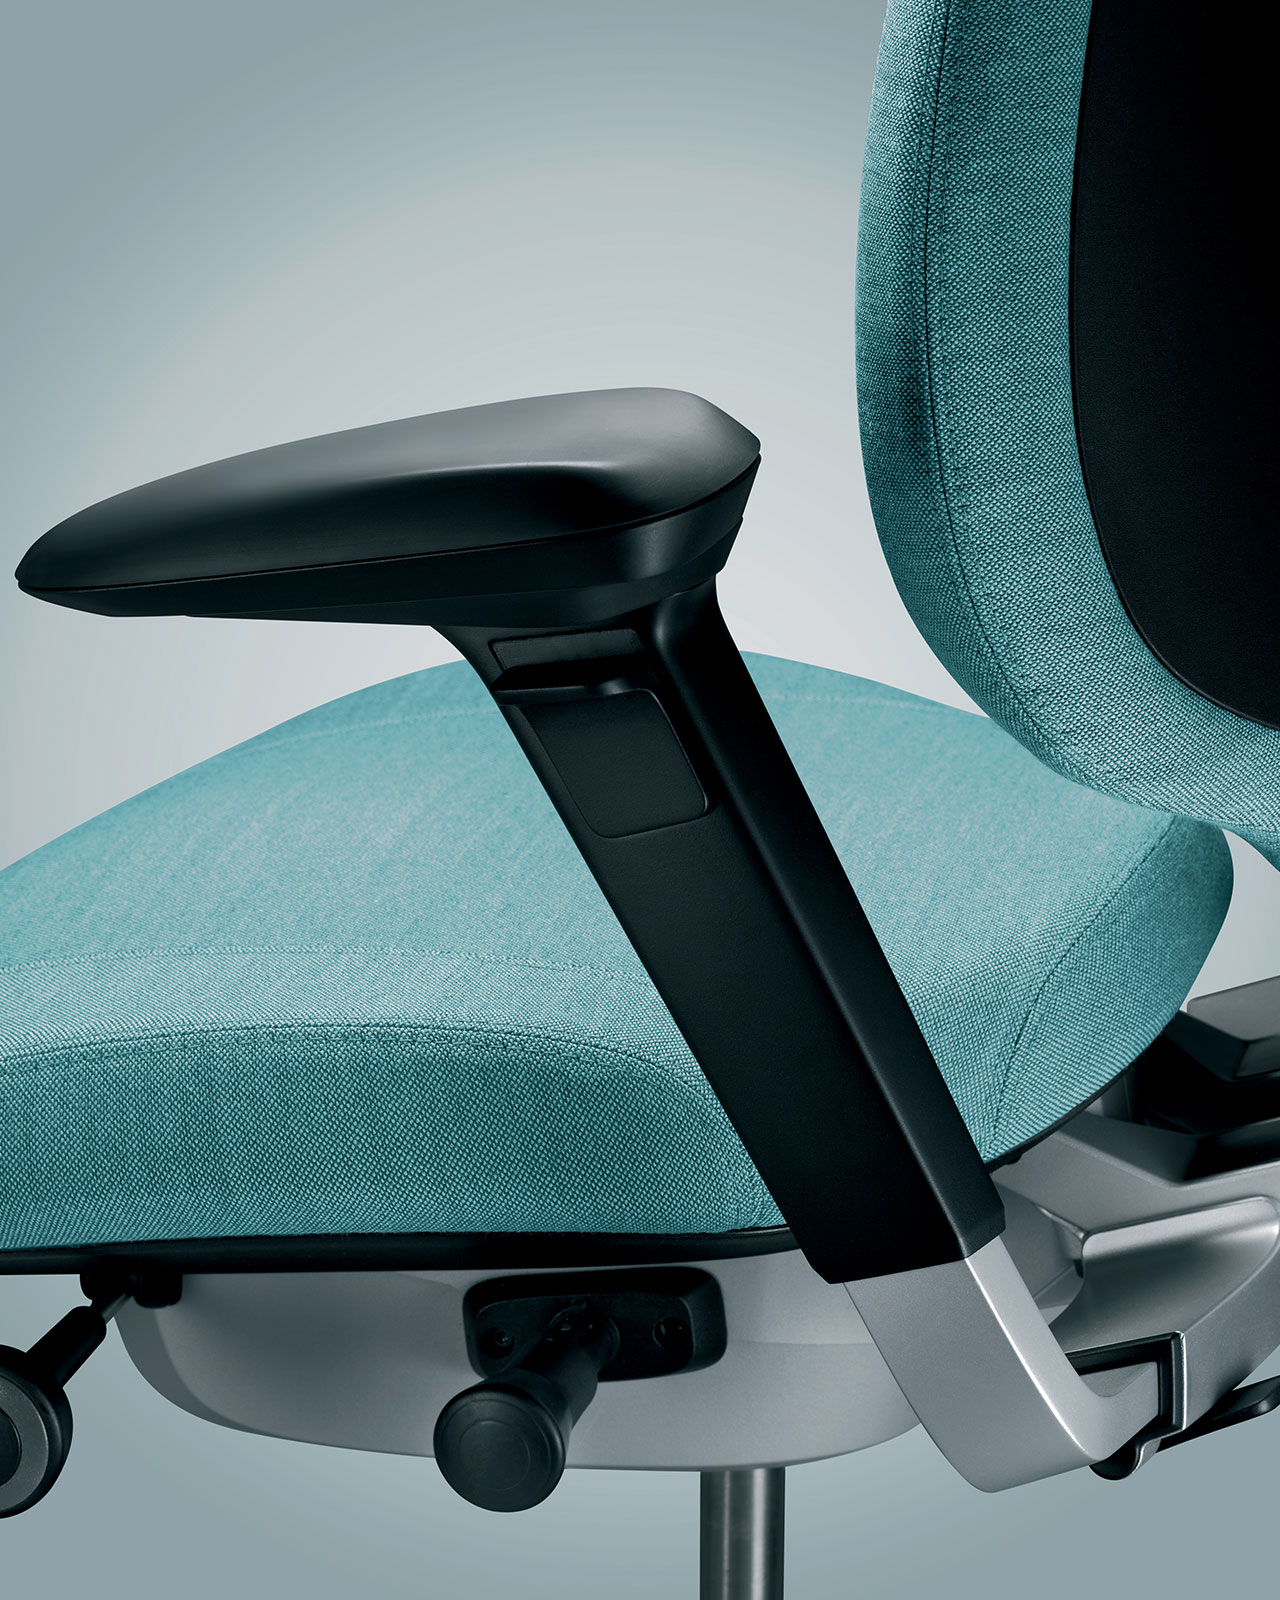 Close-up of ergonomic chair